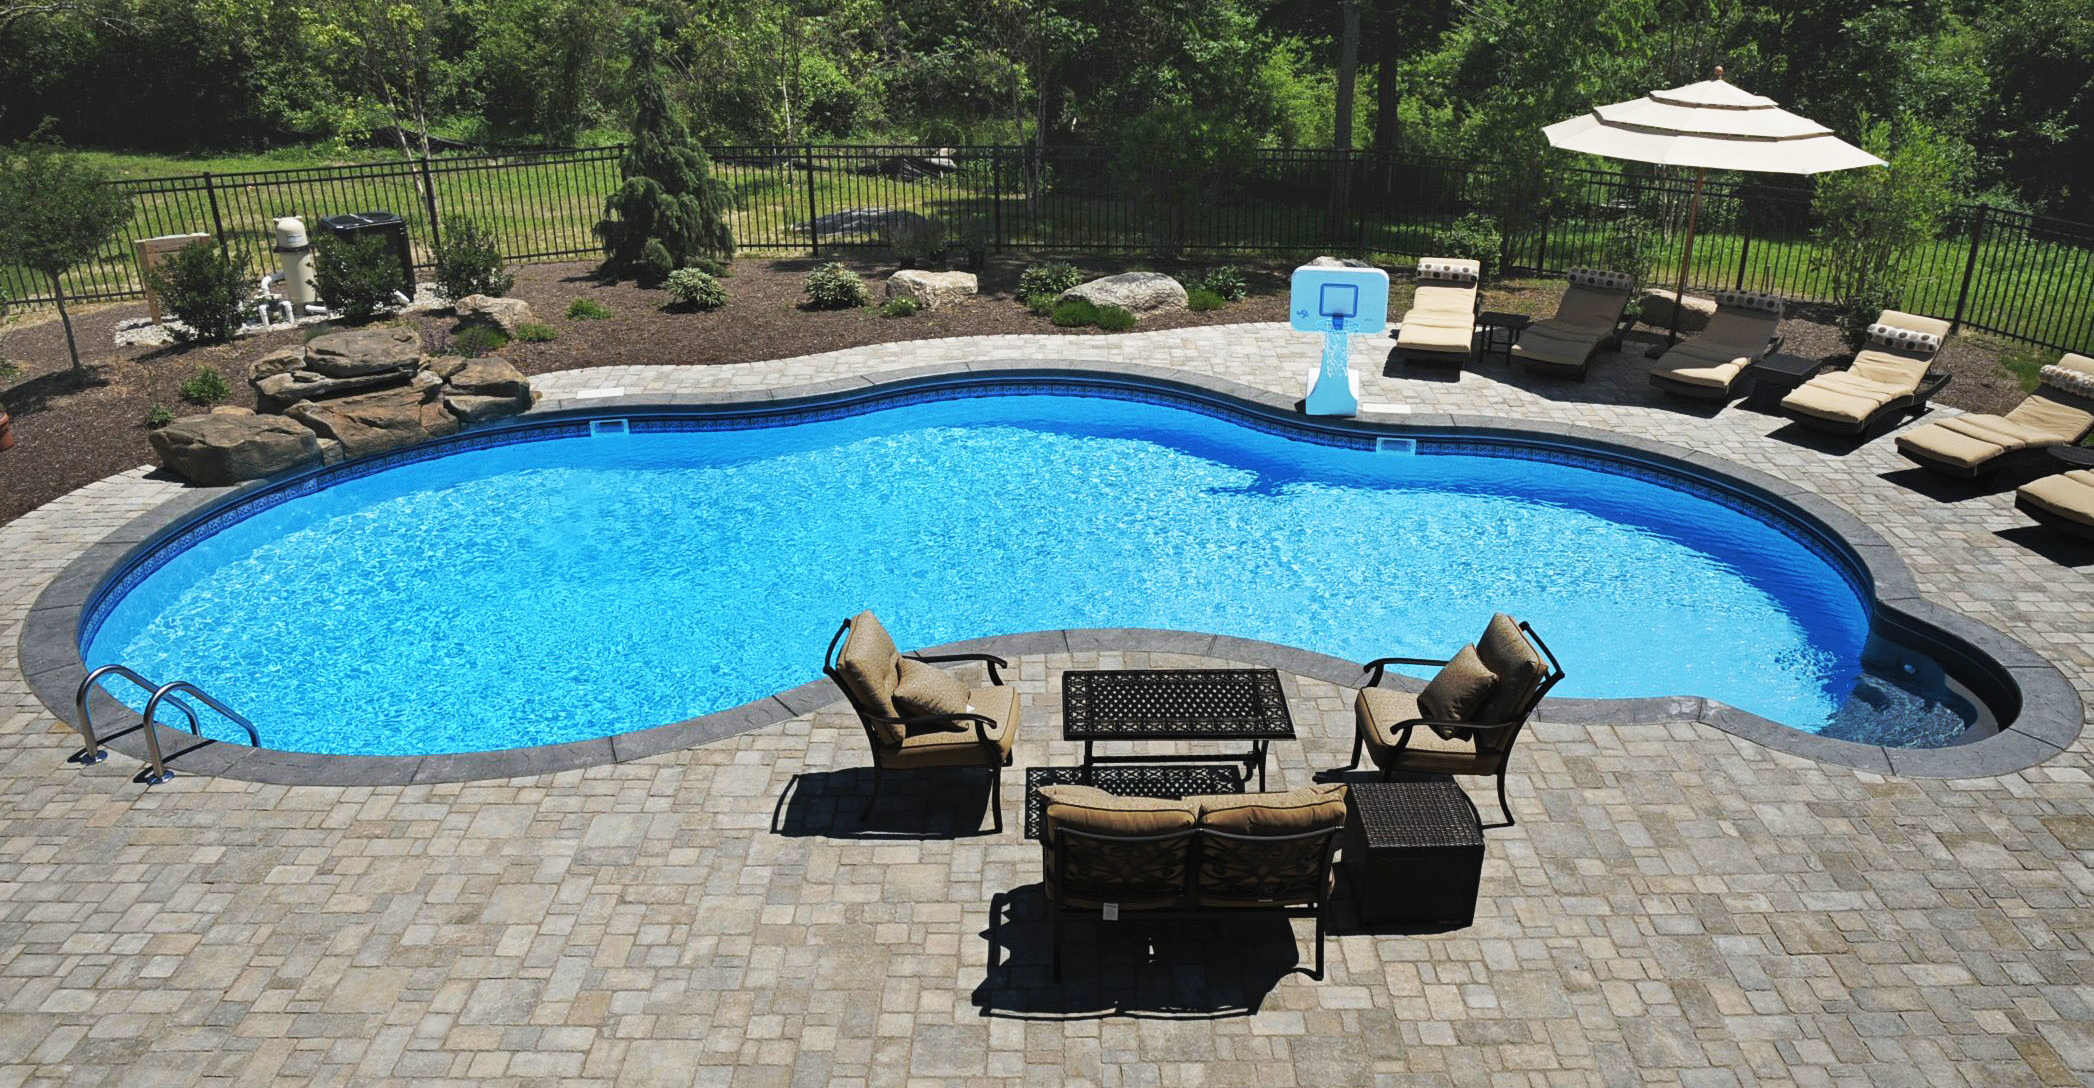 Owning A Pool benefits of owning a swimming pool 203-791-0307 | l & j pools